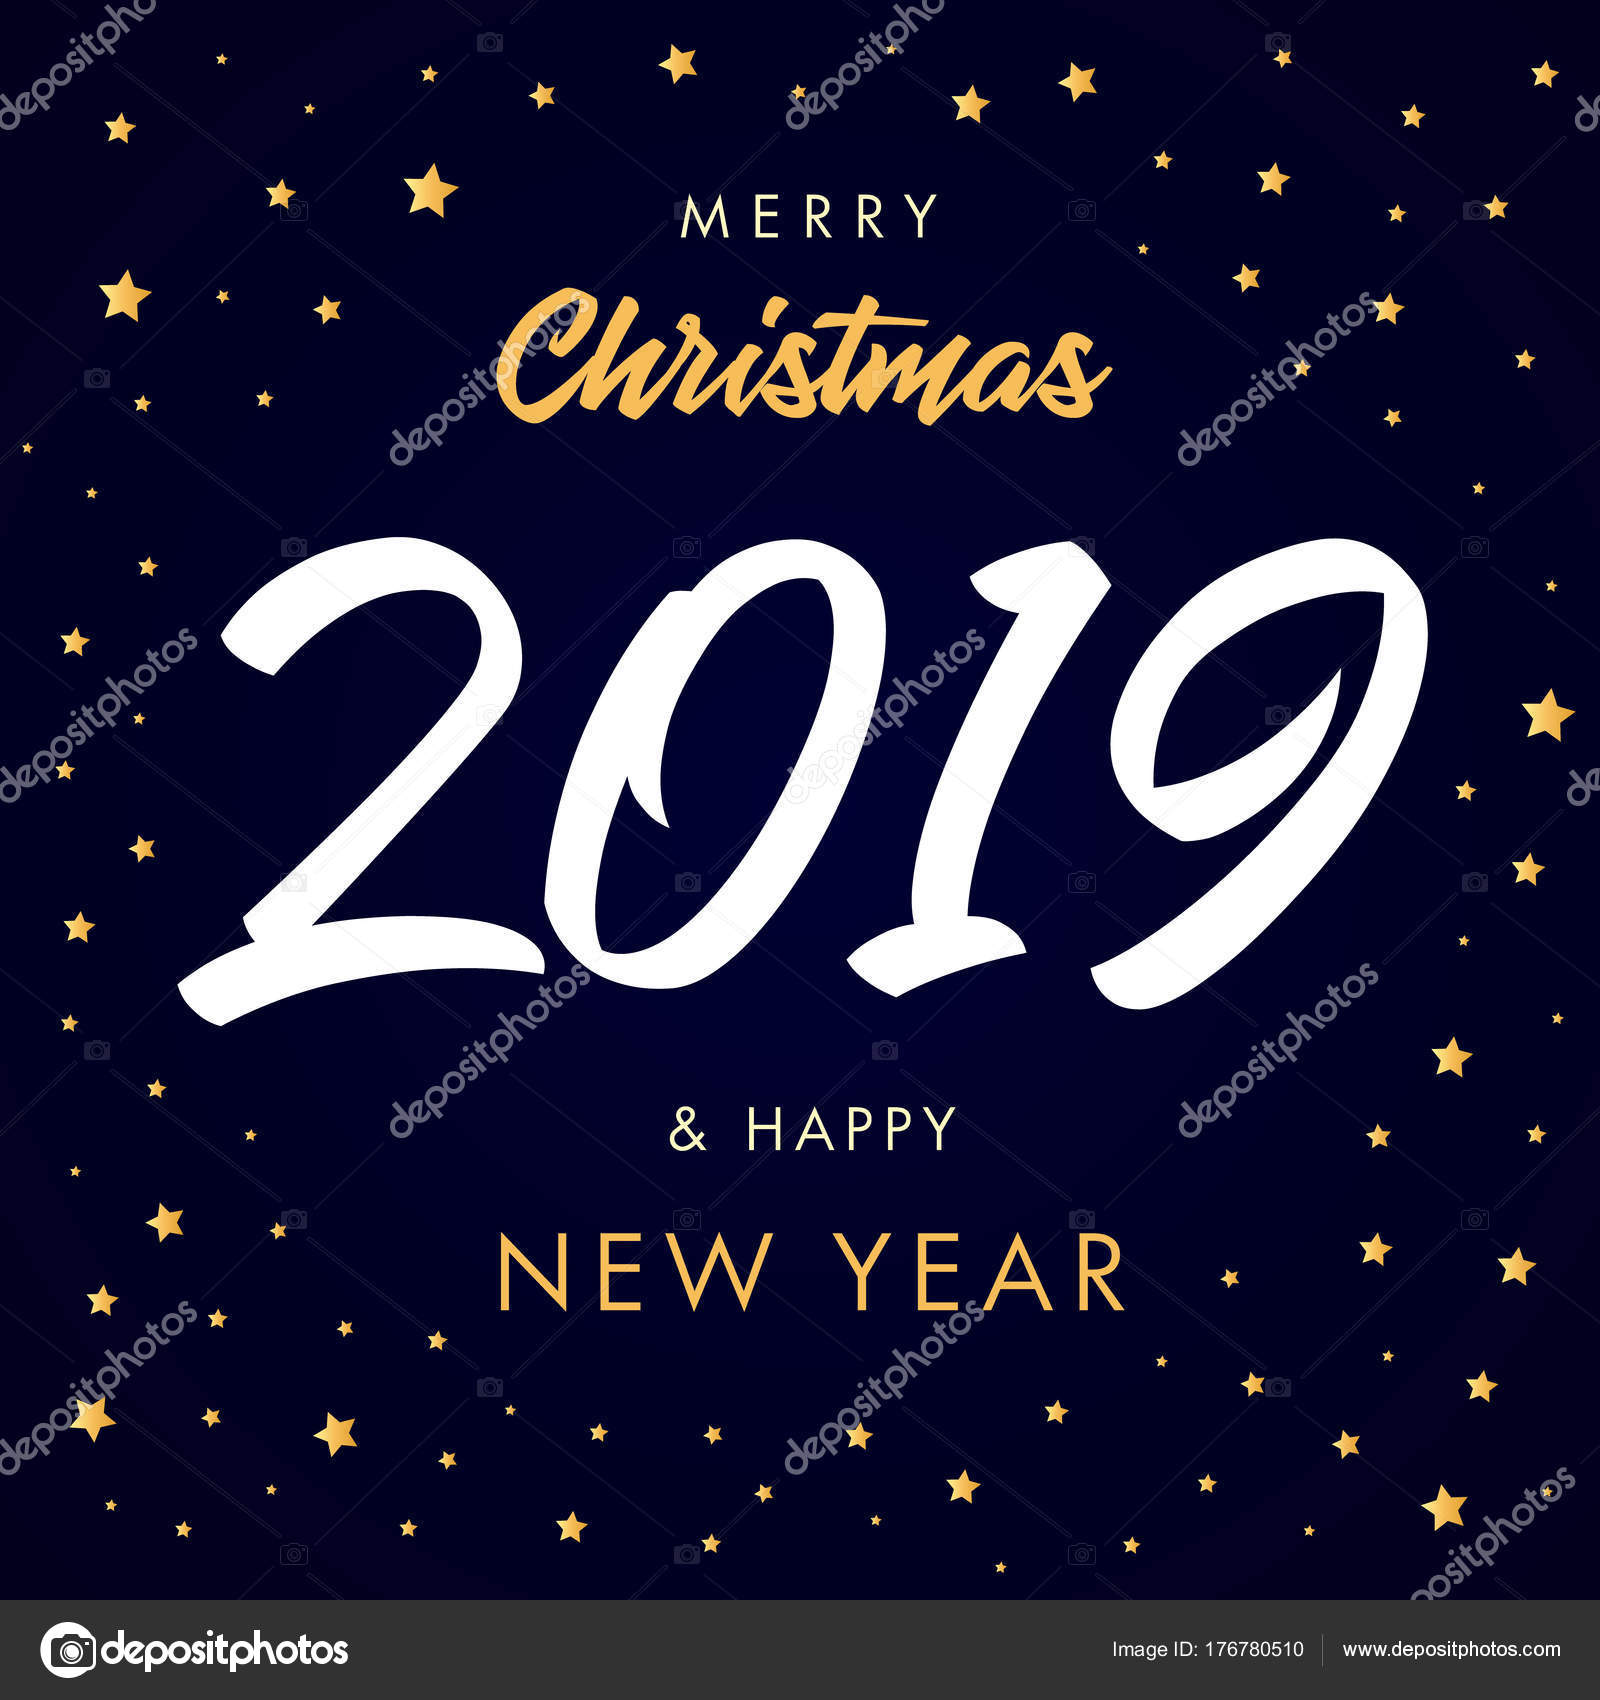 Merry Christmas Images 2019.Merry Christmas Calligraphy 2019 Happy New Year Greeting